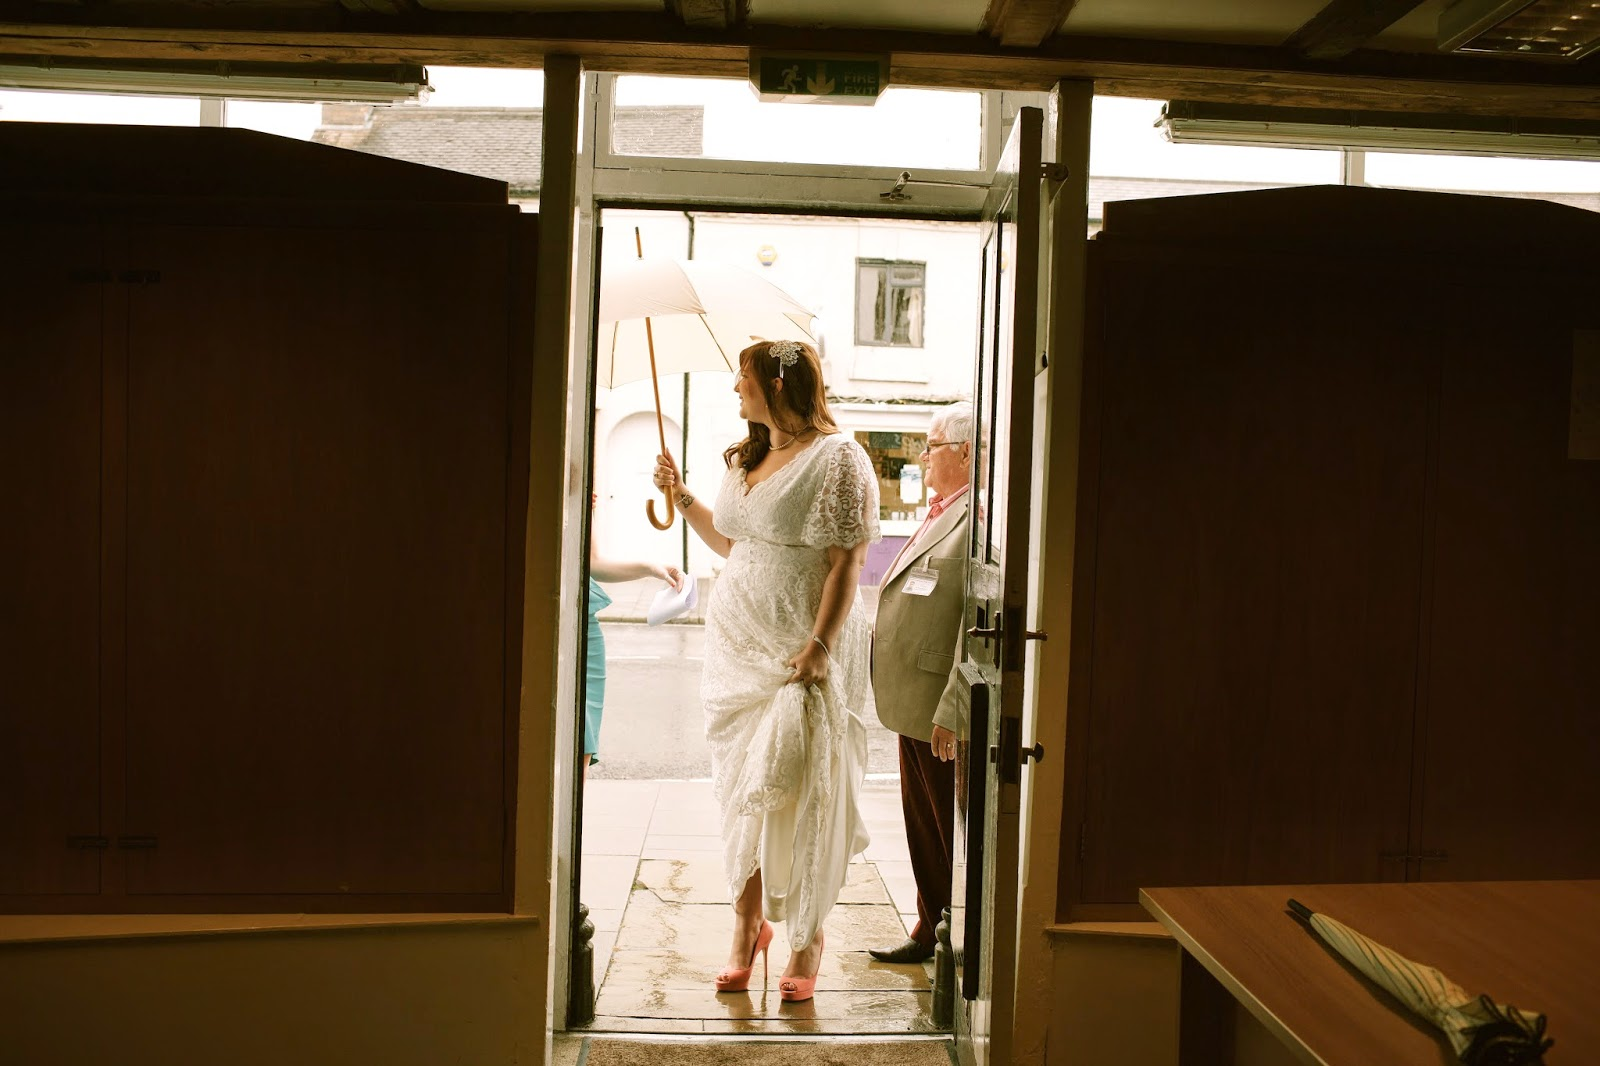 A Curvy Girl Stands in a doorway in her wedding dress